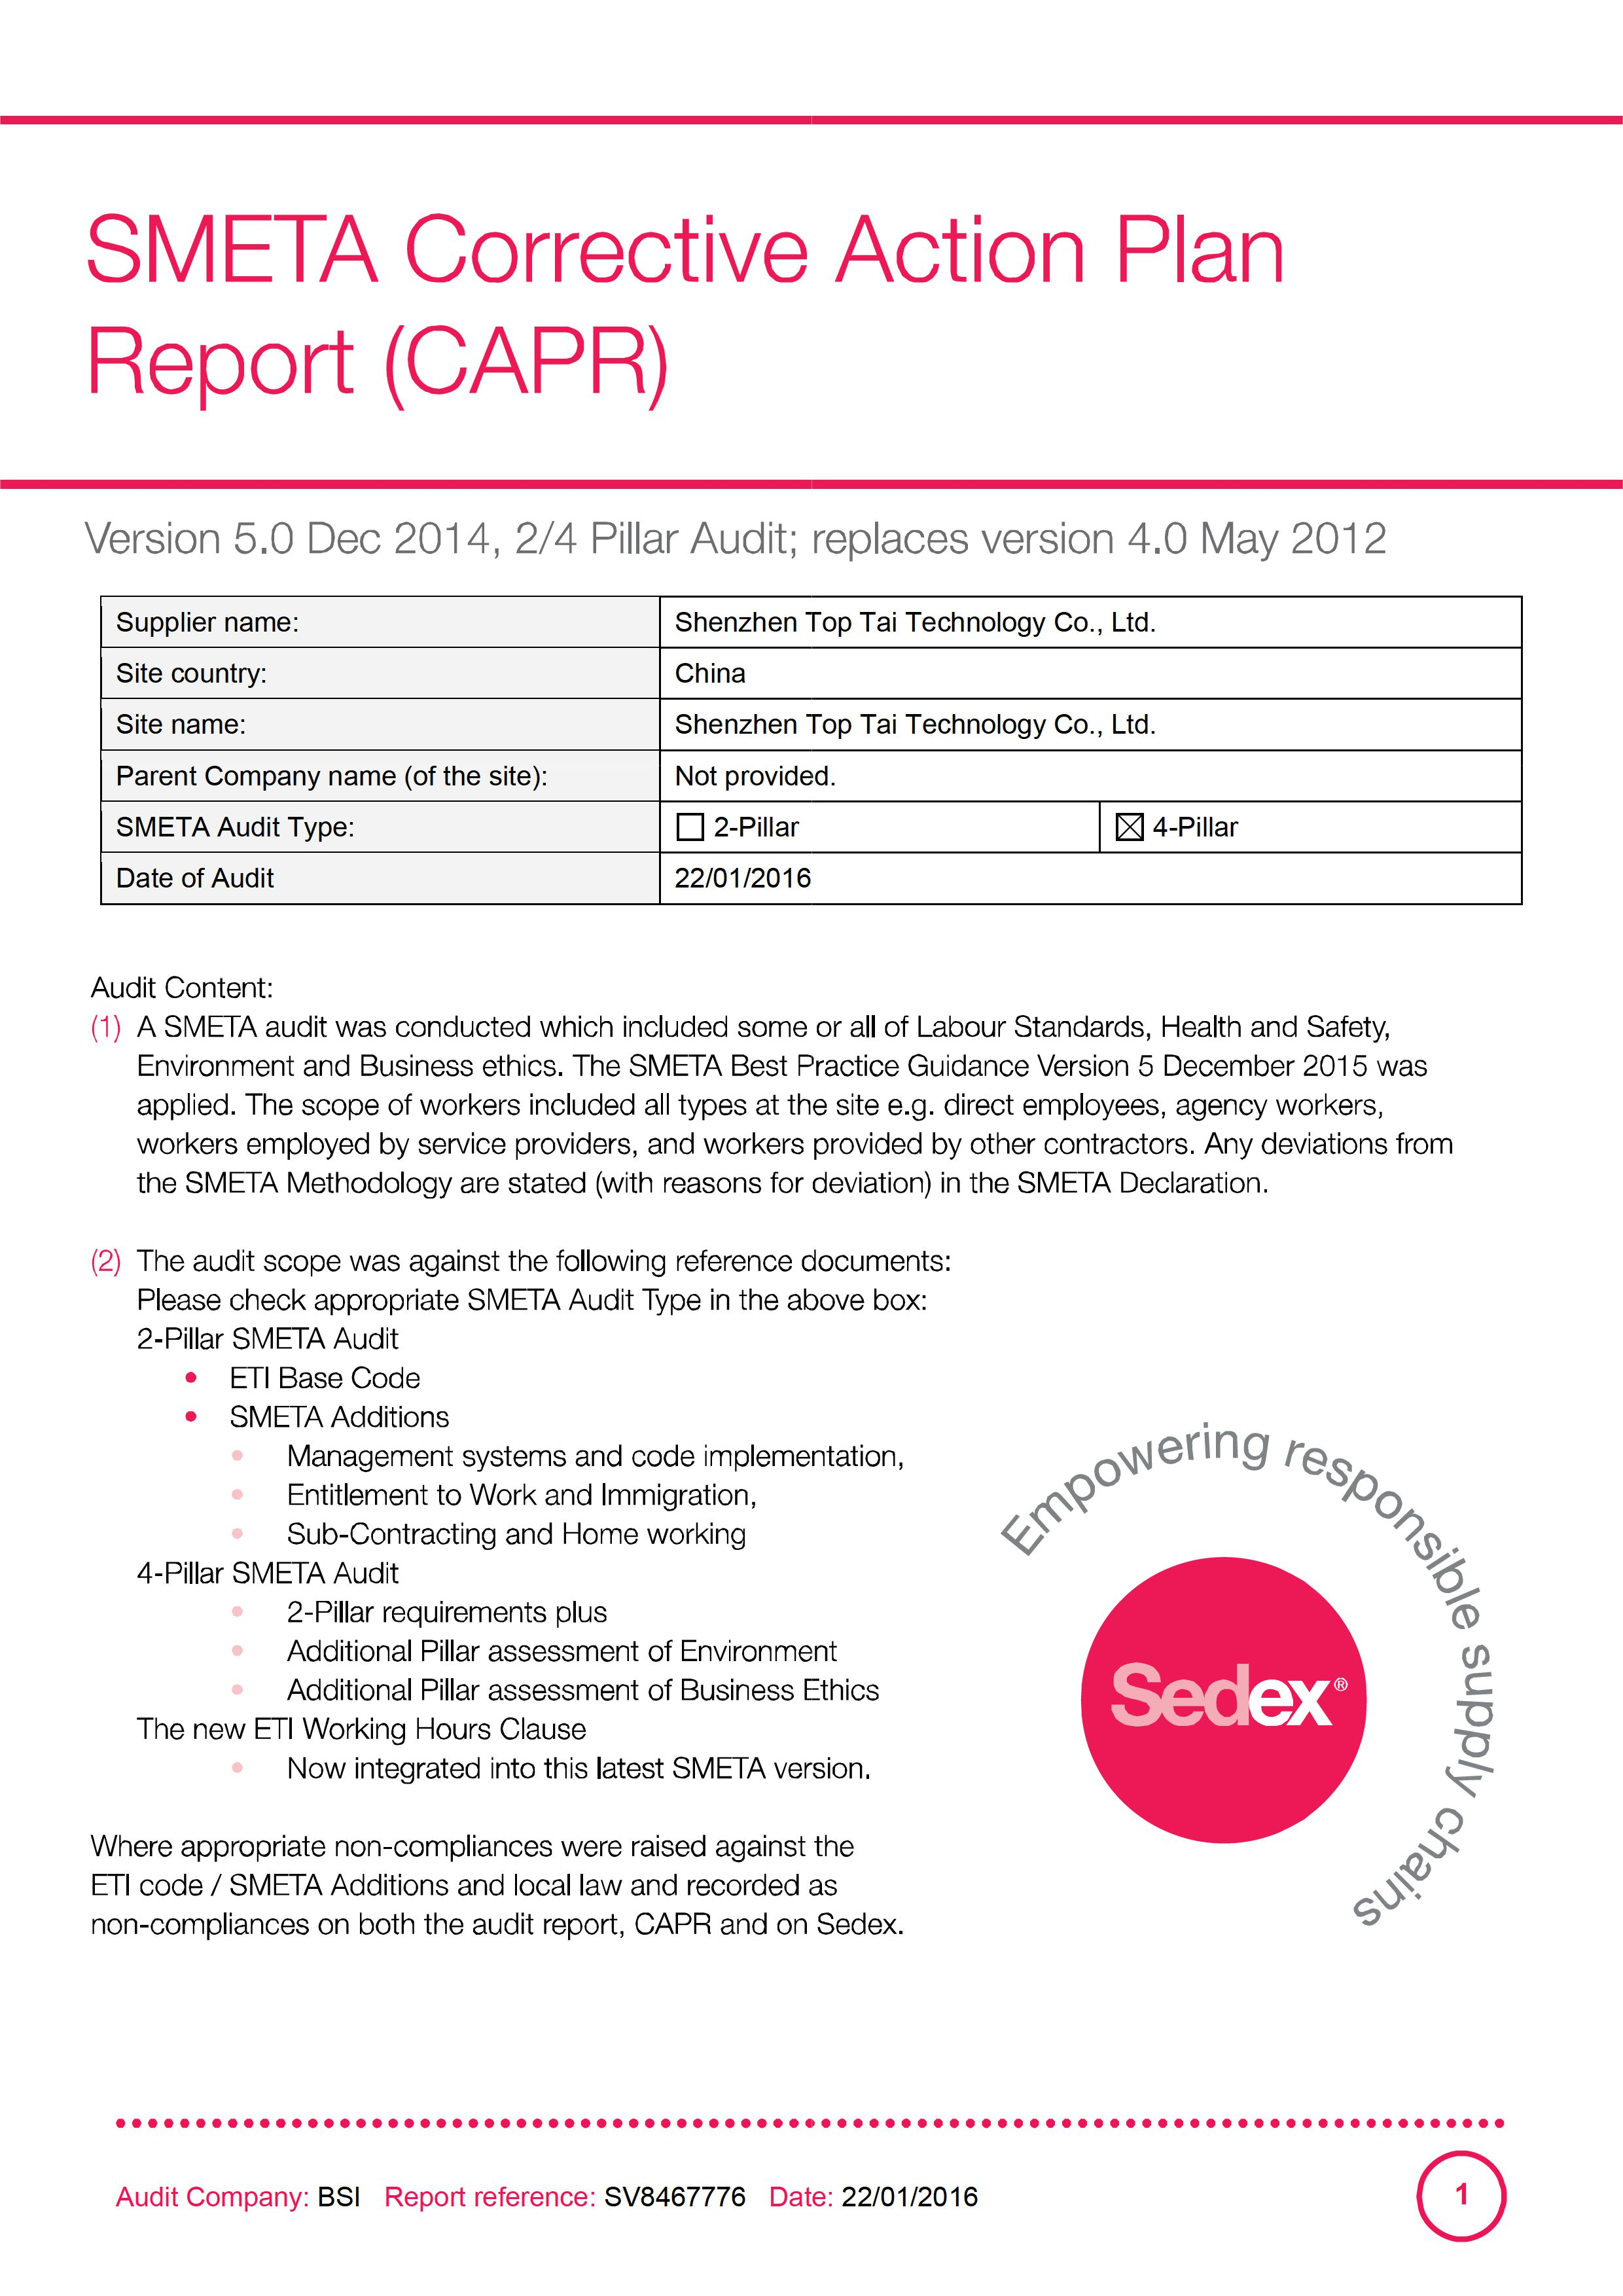 SMETA Corrective Action Plan Report (CAPR)